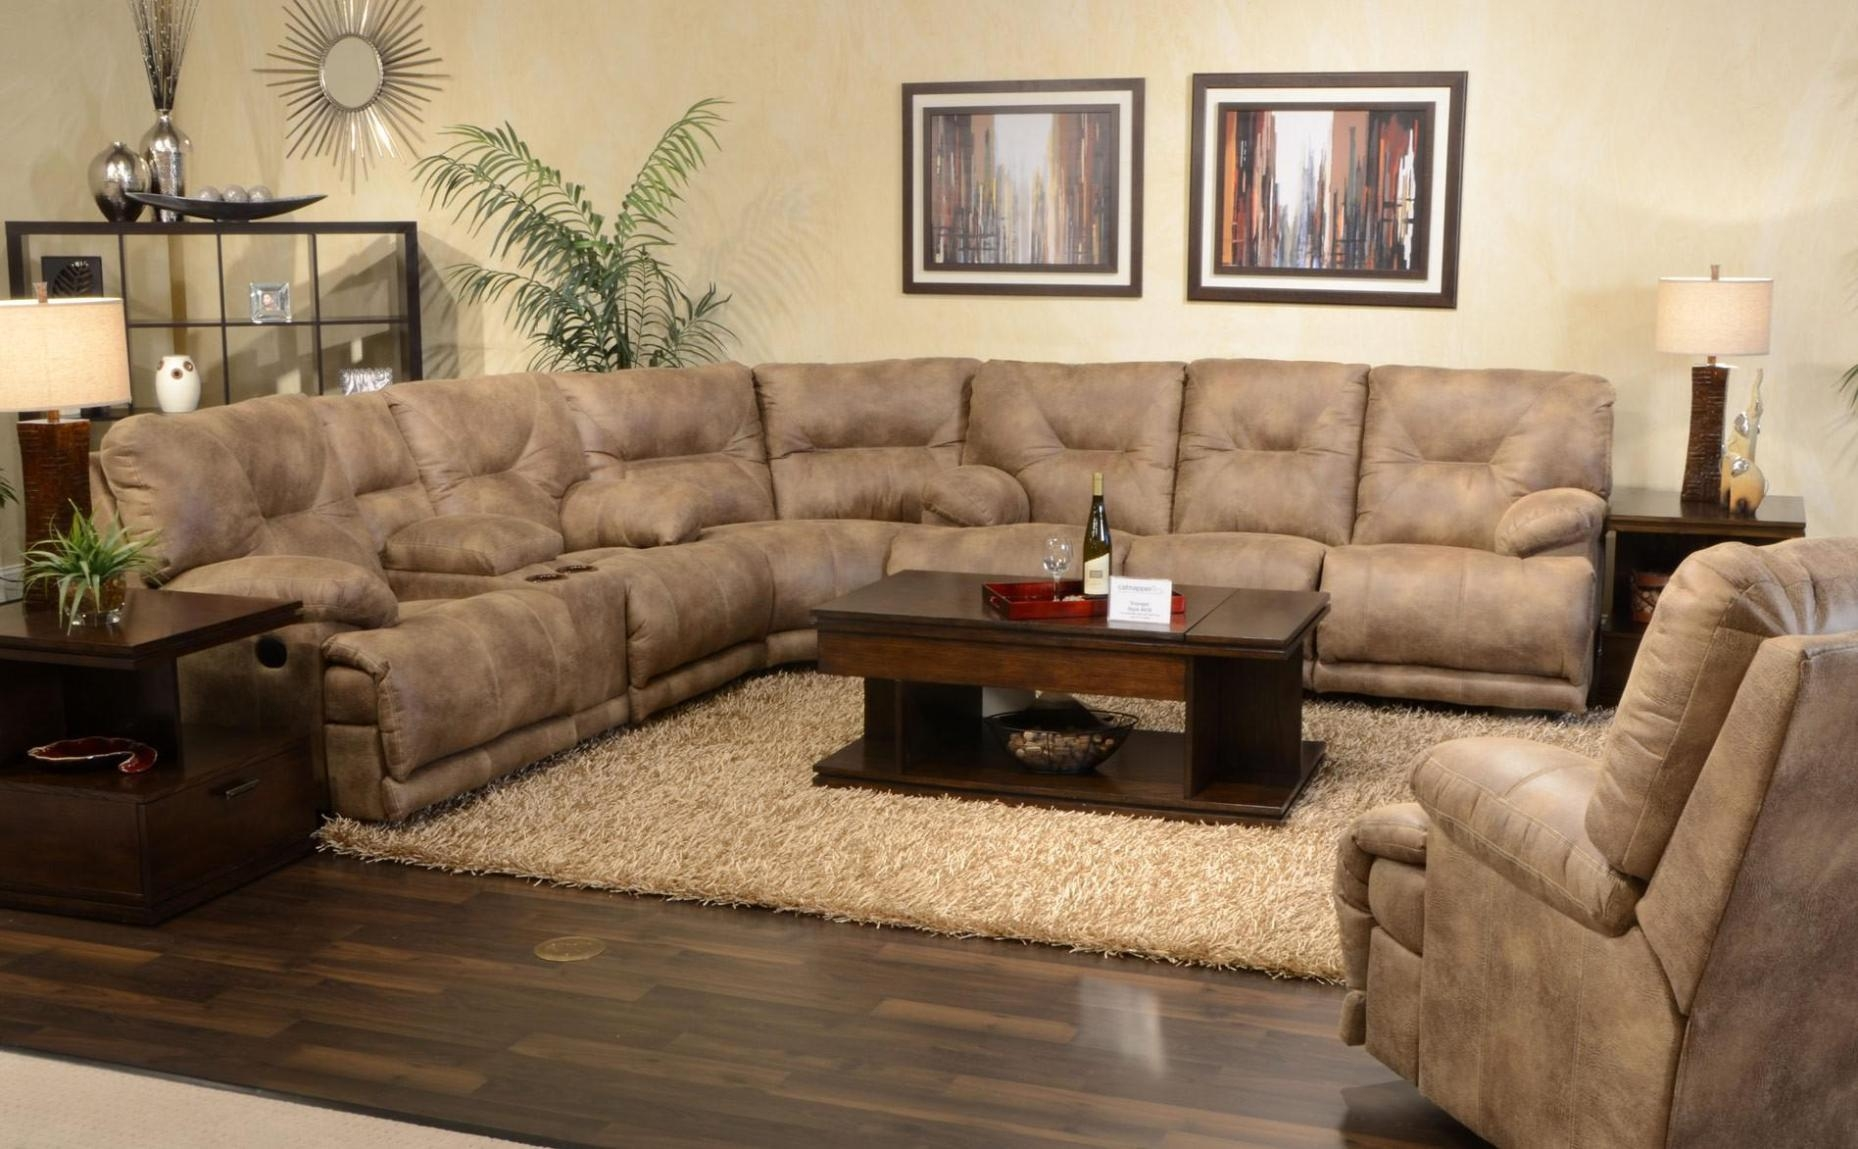 Sofas Center : Sectional Sofas With Recliners And Chaise Furniture In Slipcovers For Sectional Sofas With Recliners (Image 20 of 20)